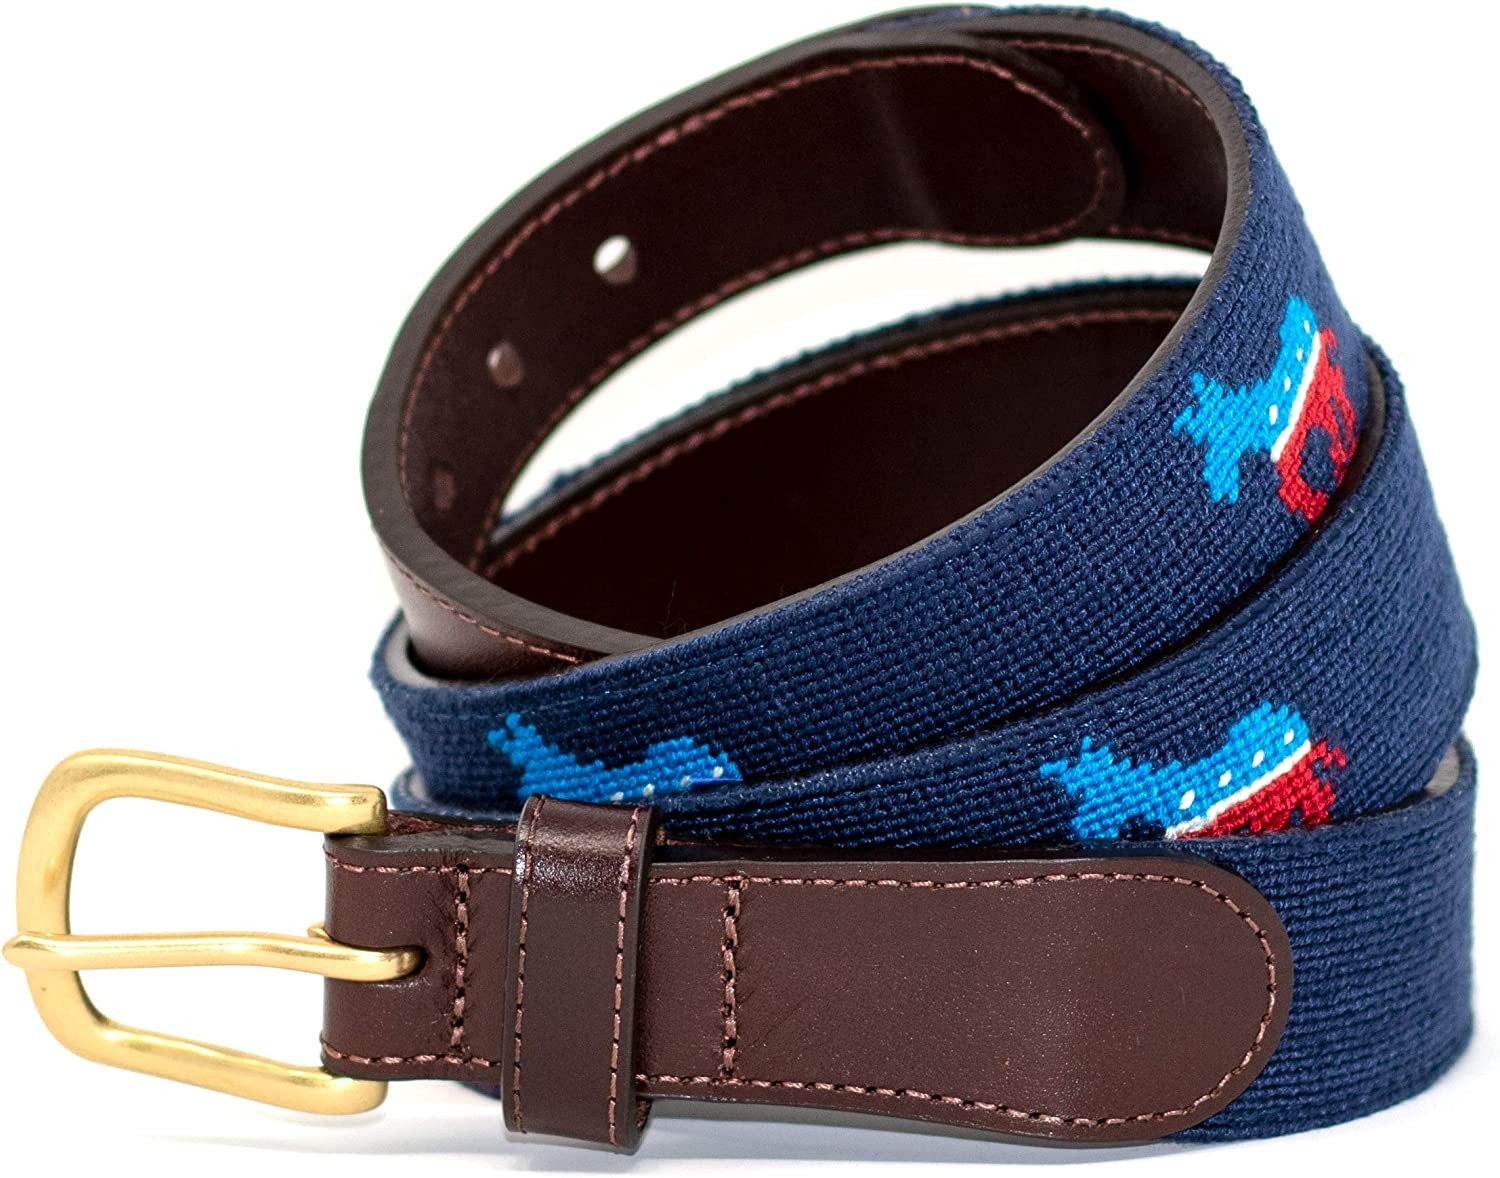 Needlepoint Belts for Men Handmade w//Cotton on Full Grain Leather Backing /& Solid Brass Buckle